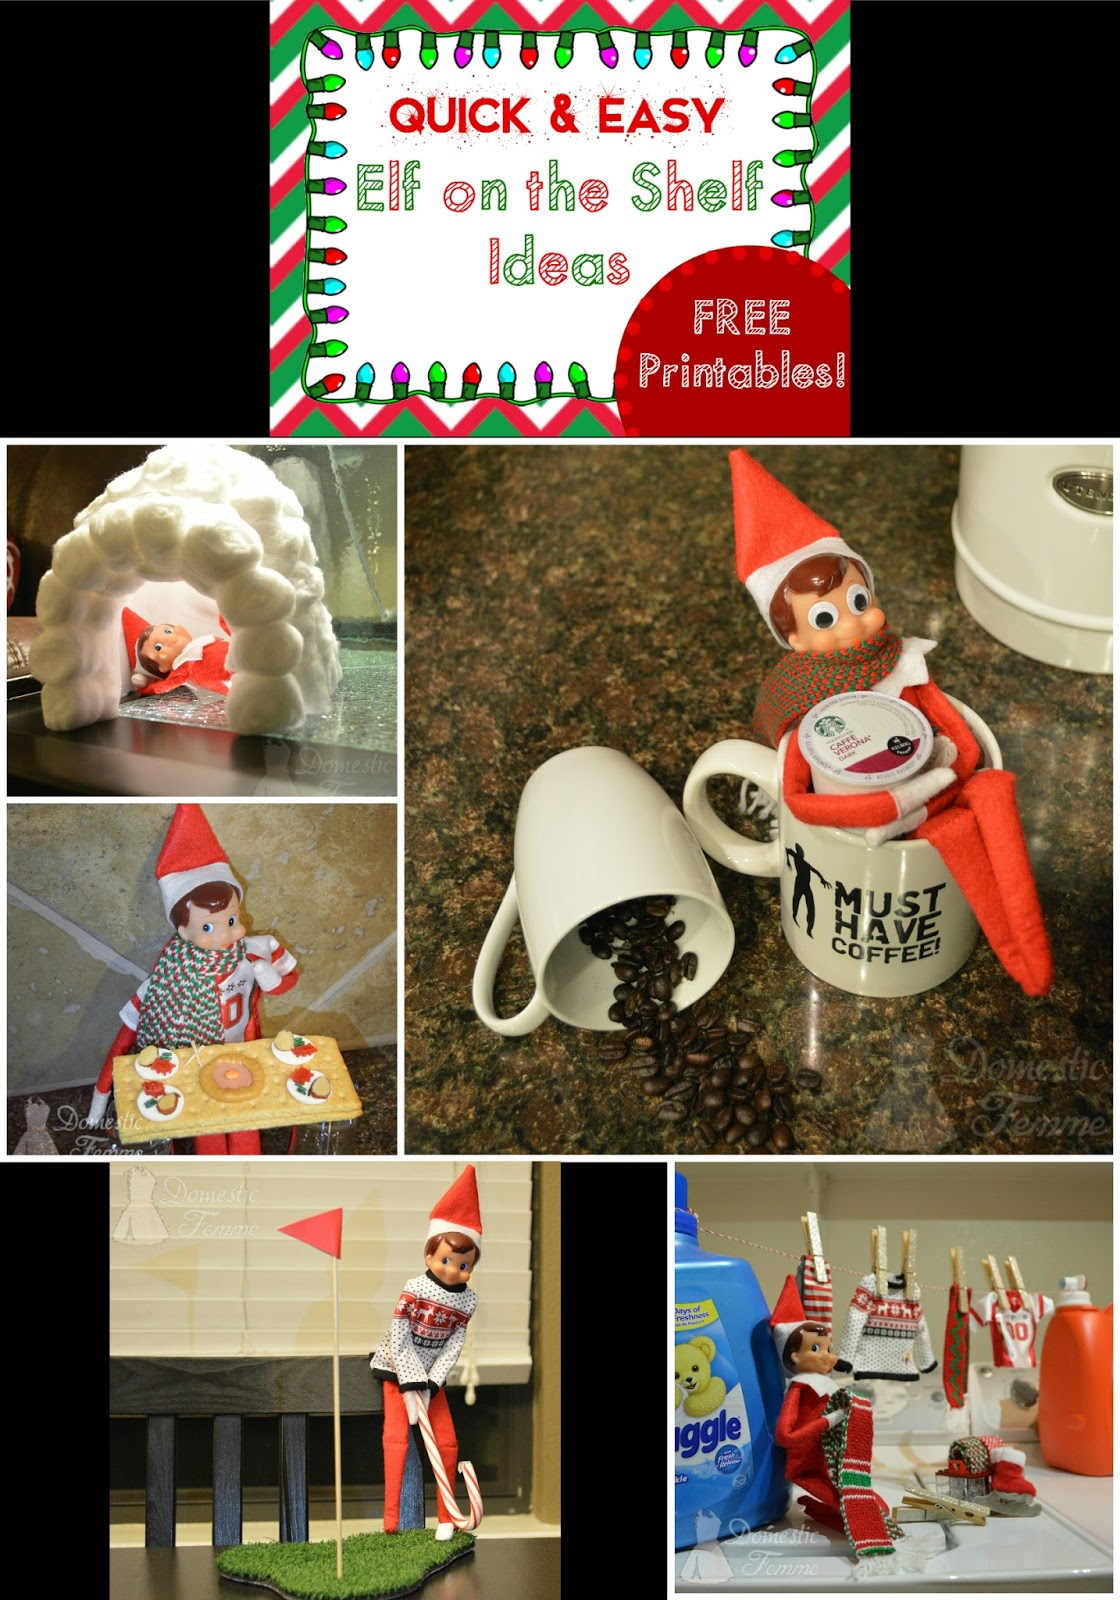 Domestic Femme Elf On The Shelf 2015 Calendar With Free